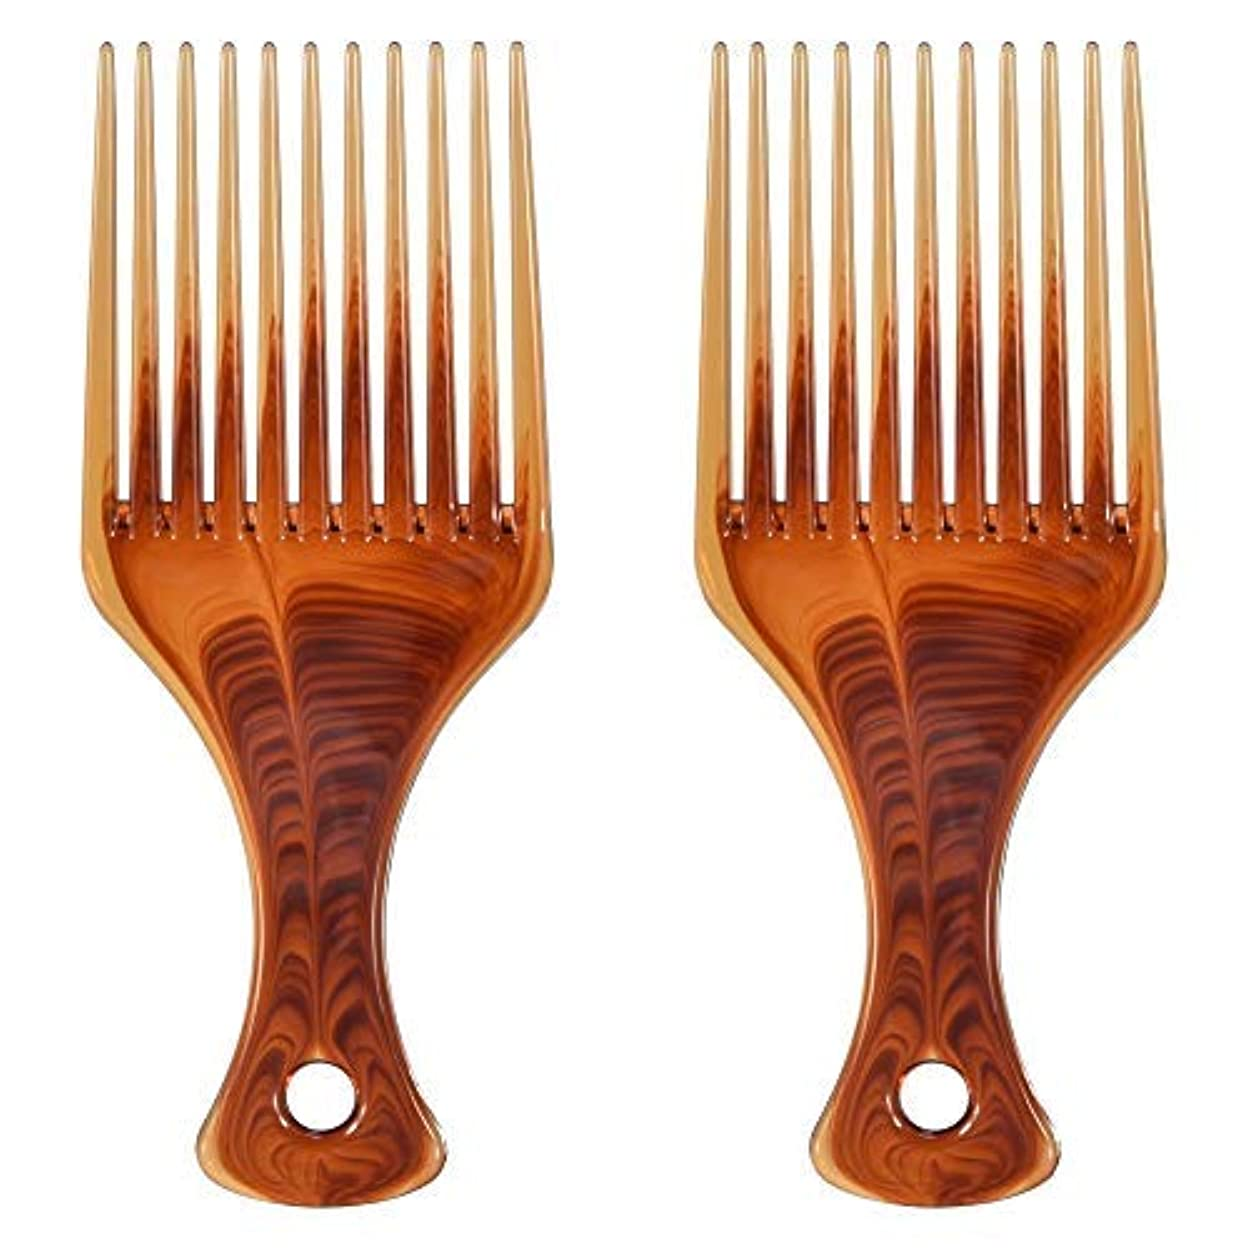 シーサイド引数定常Mosuch Hair Pick, 2pcs Super Smooth Picks Comb Hairdressing Wide Tooth Modeling Big Tooth Comb [並行輸入品]